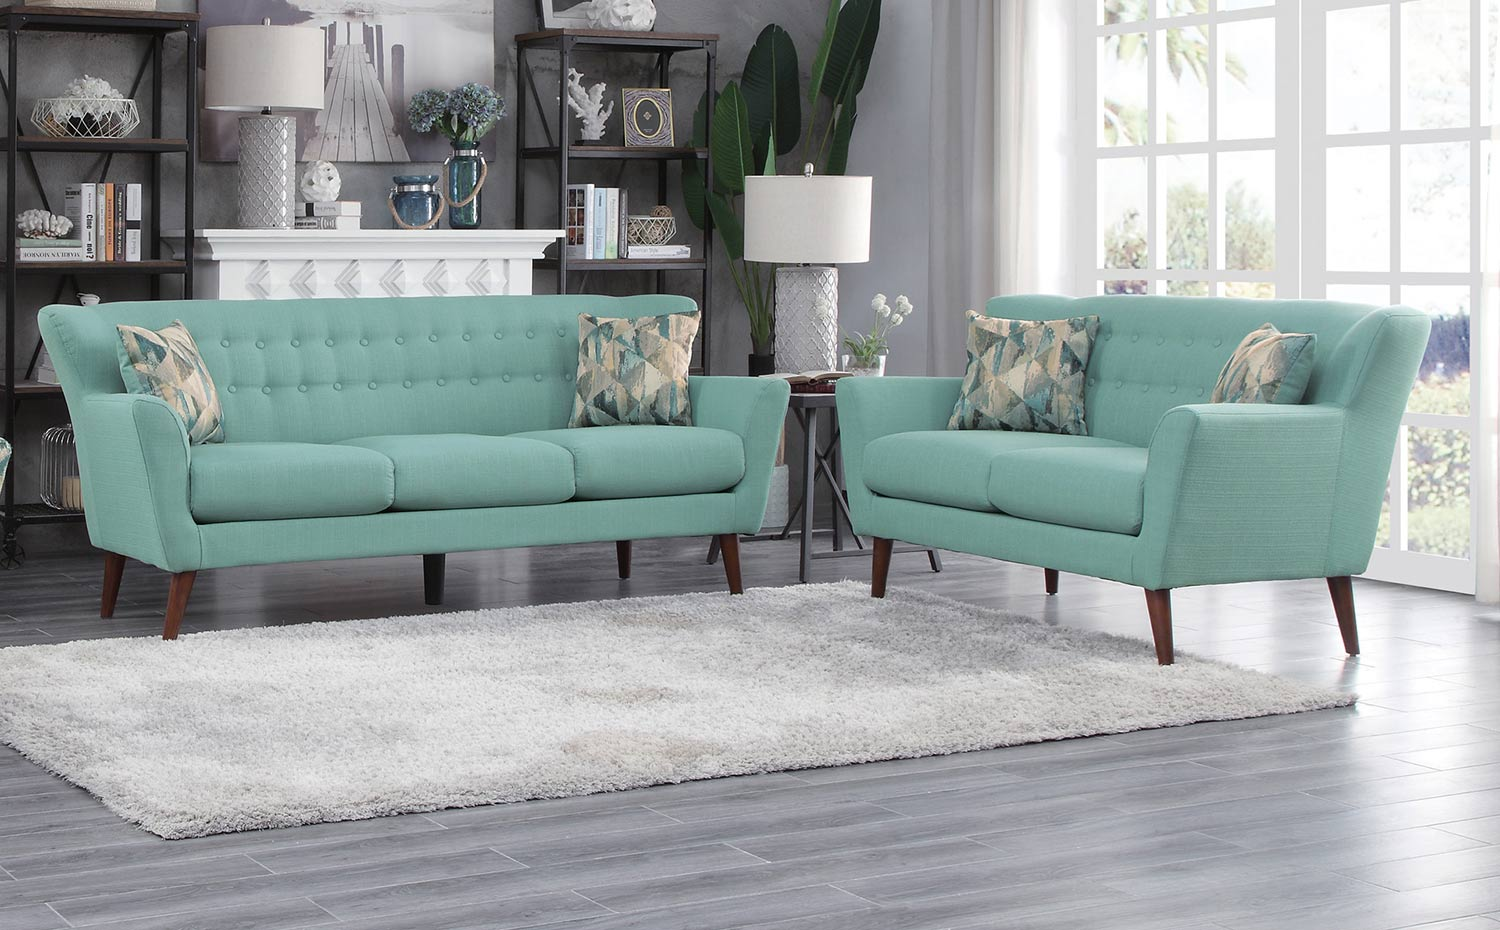 Homelegance Maja Sofa Set - Teal